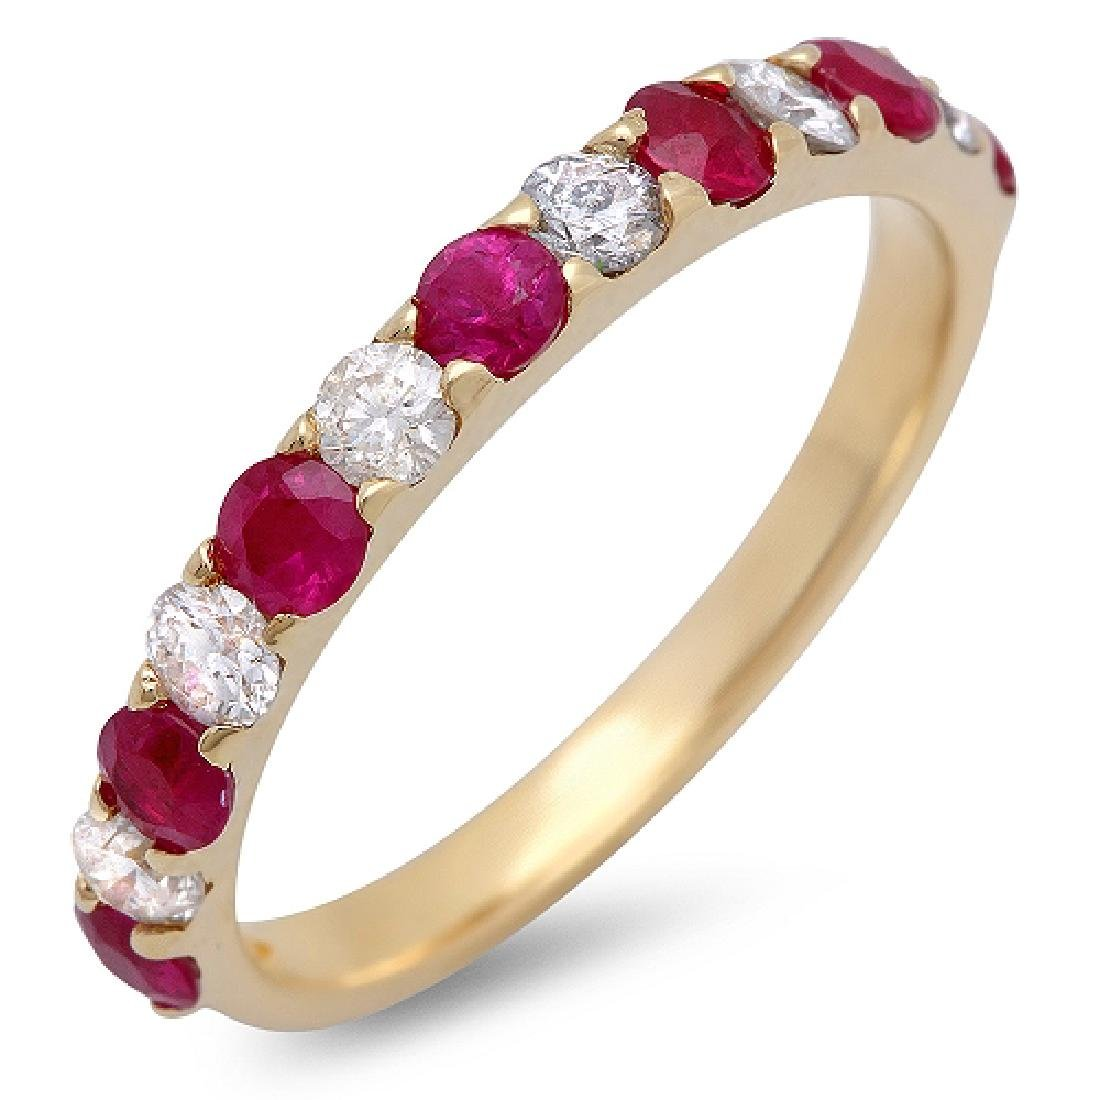 0.85Carat Natural Ruby 18K Solid Yellow Gold Diamond